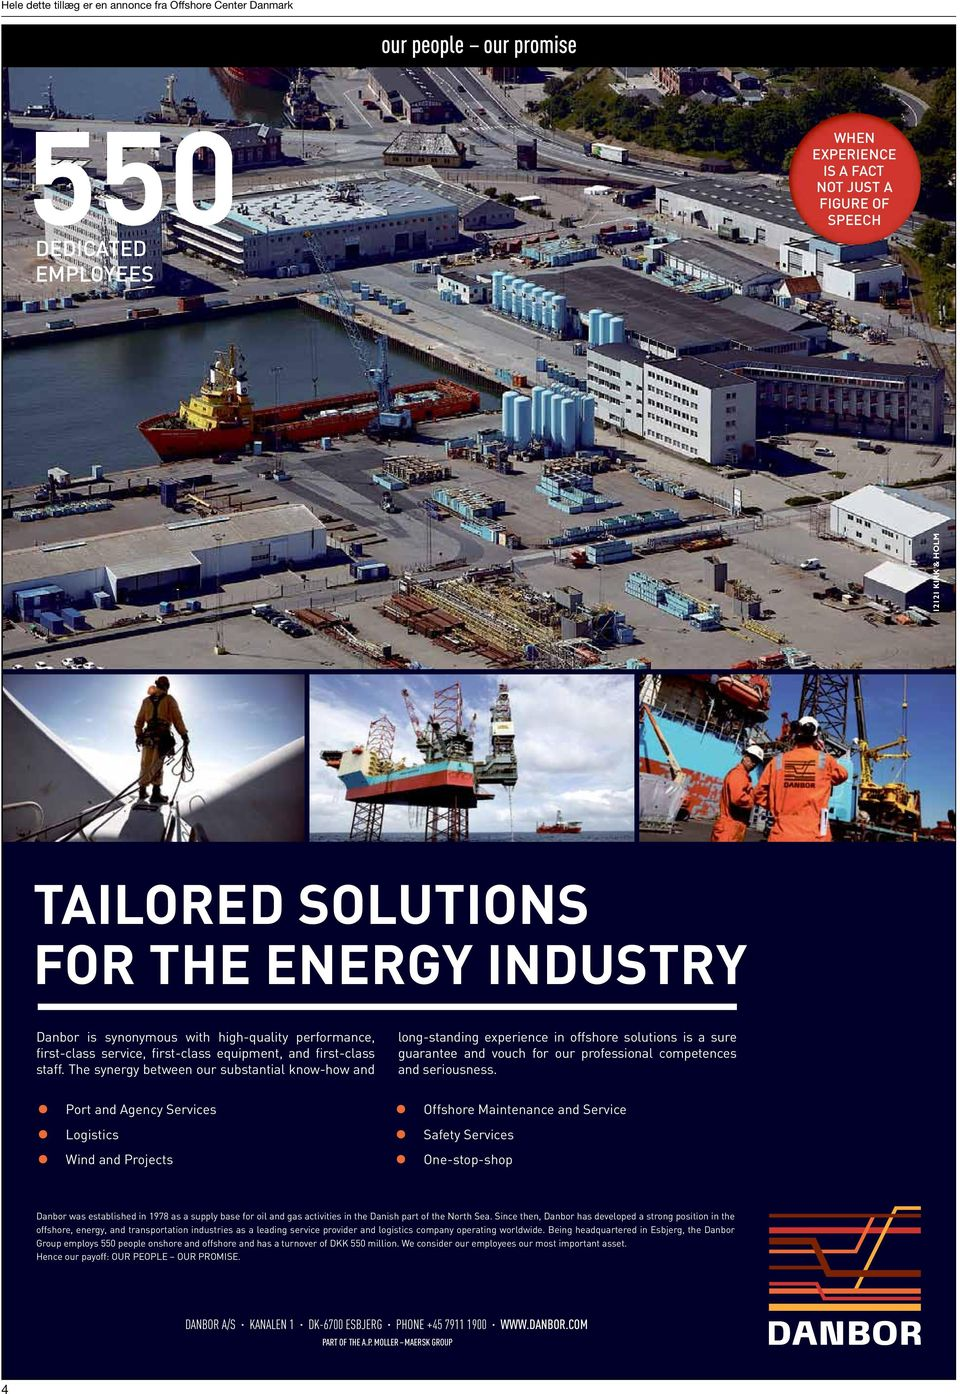 The synergy between our substantial know-how and Port and Agency Services Logistics Wind and Projects long-standing experience in offshore solutions is a sure guarantee and vouch for our professional